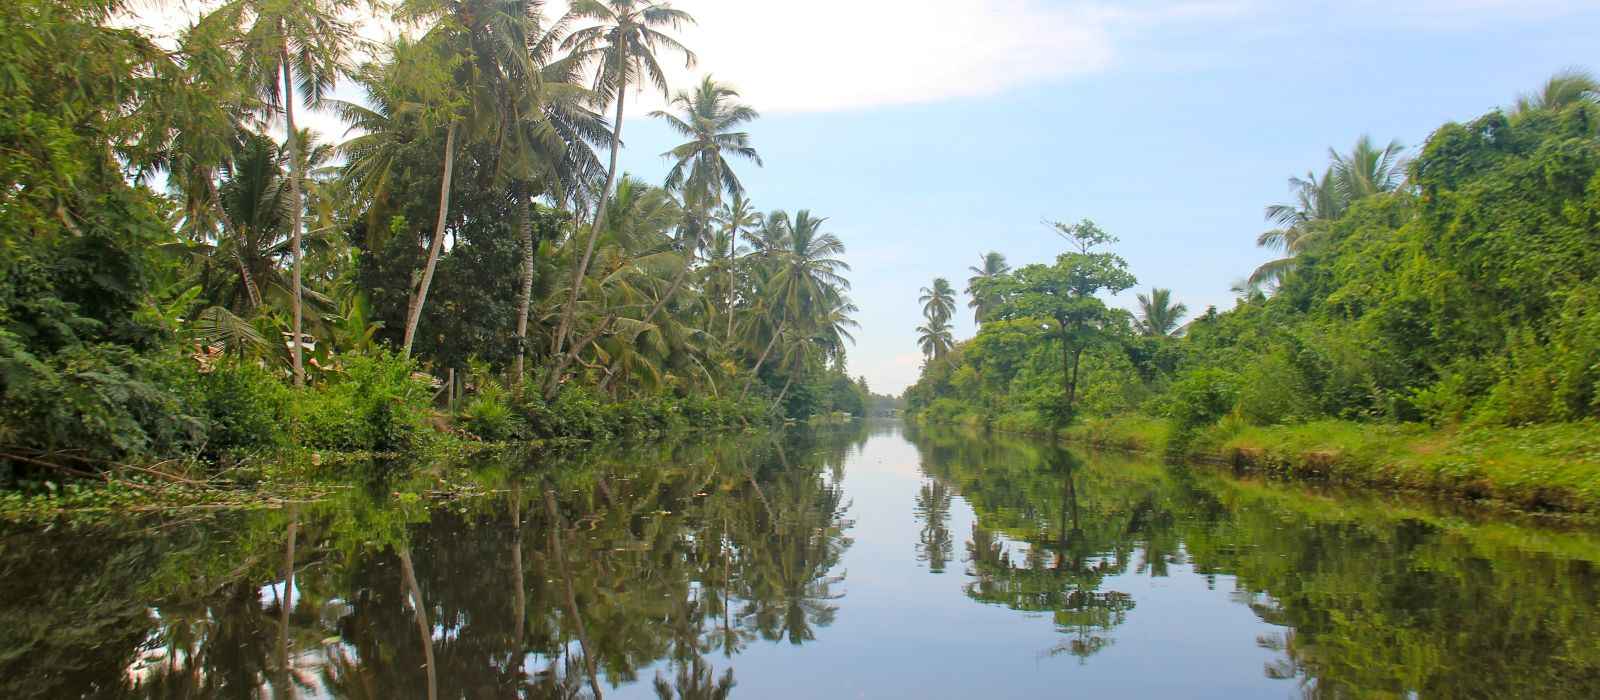 Sri Lanka's Heritage Cities and Unspoiled Landscapes Tour Trip 4